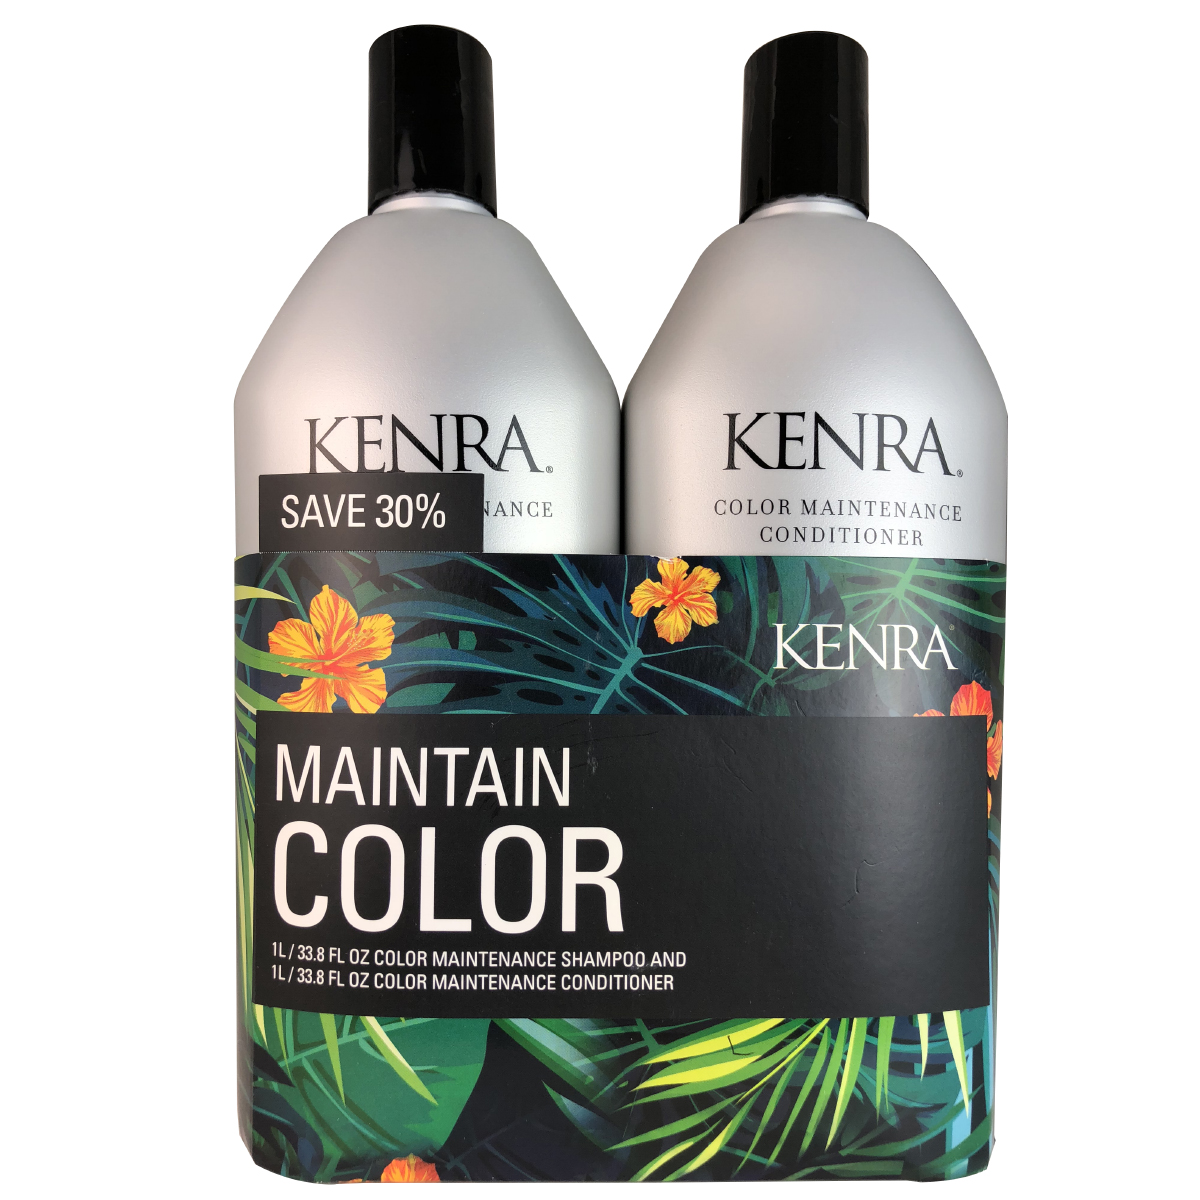 Kenra Maintain Color Shampoo & Conditioner Duo 33.8 Oz EA